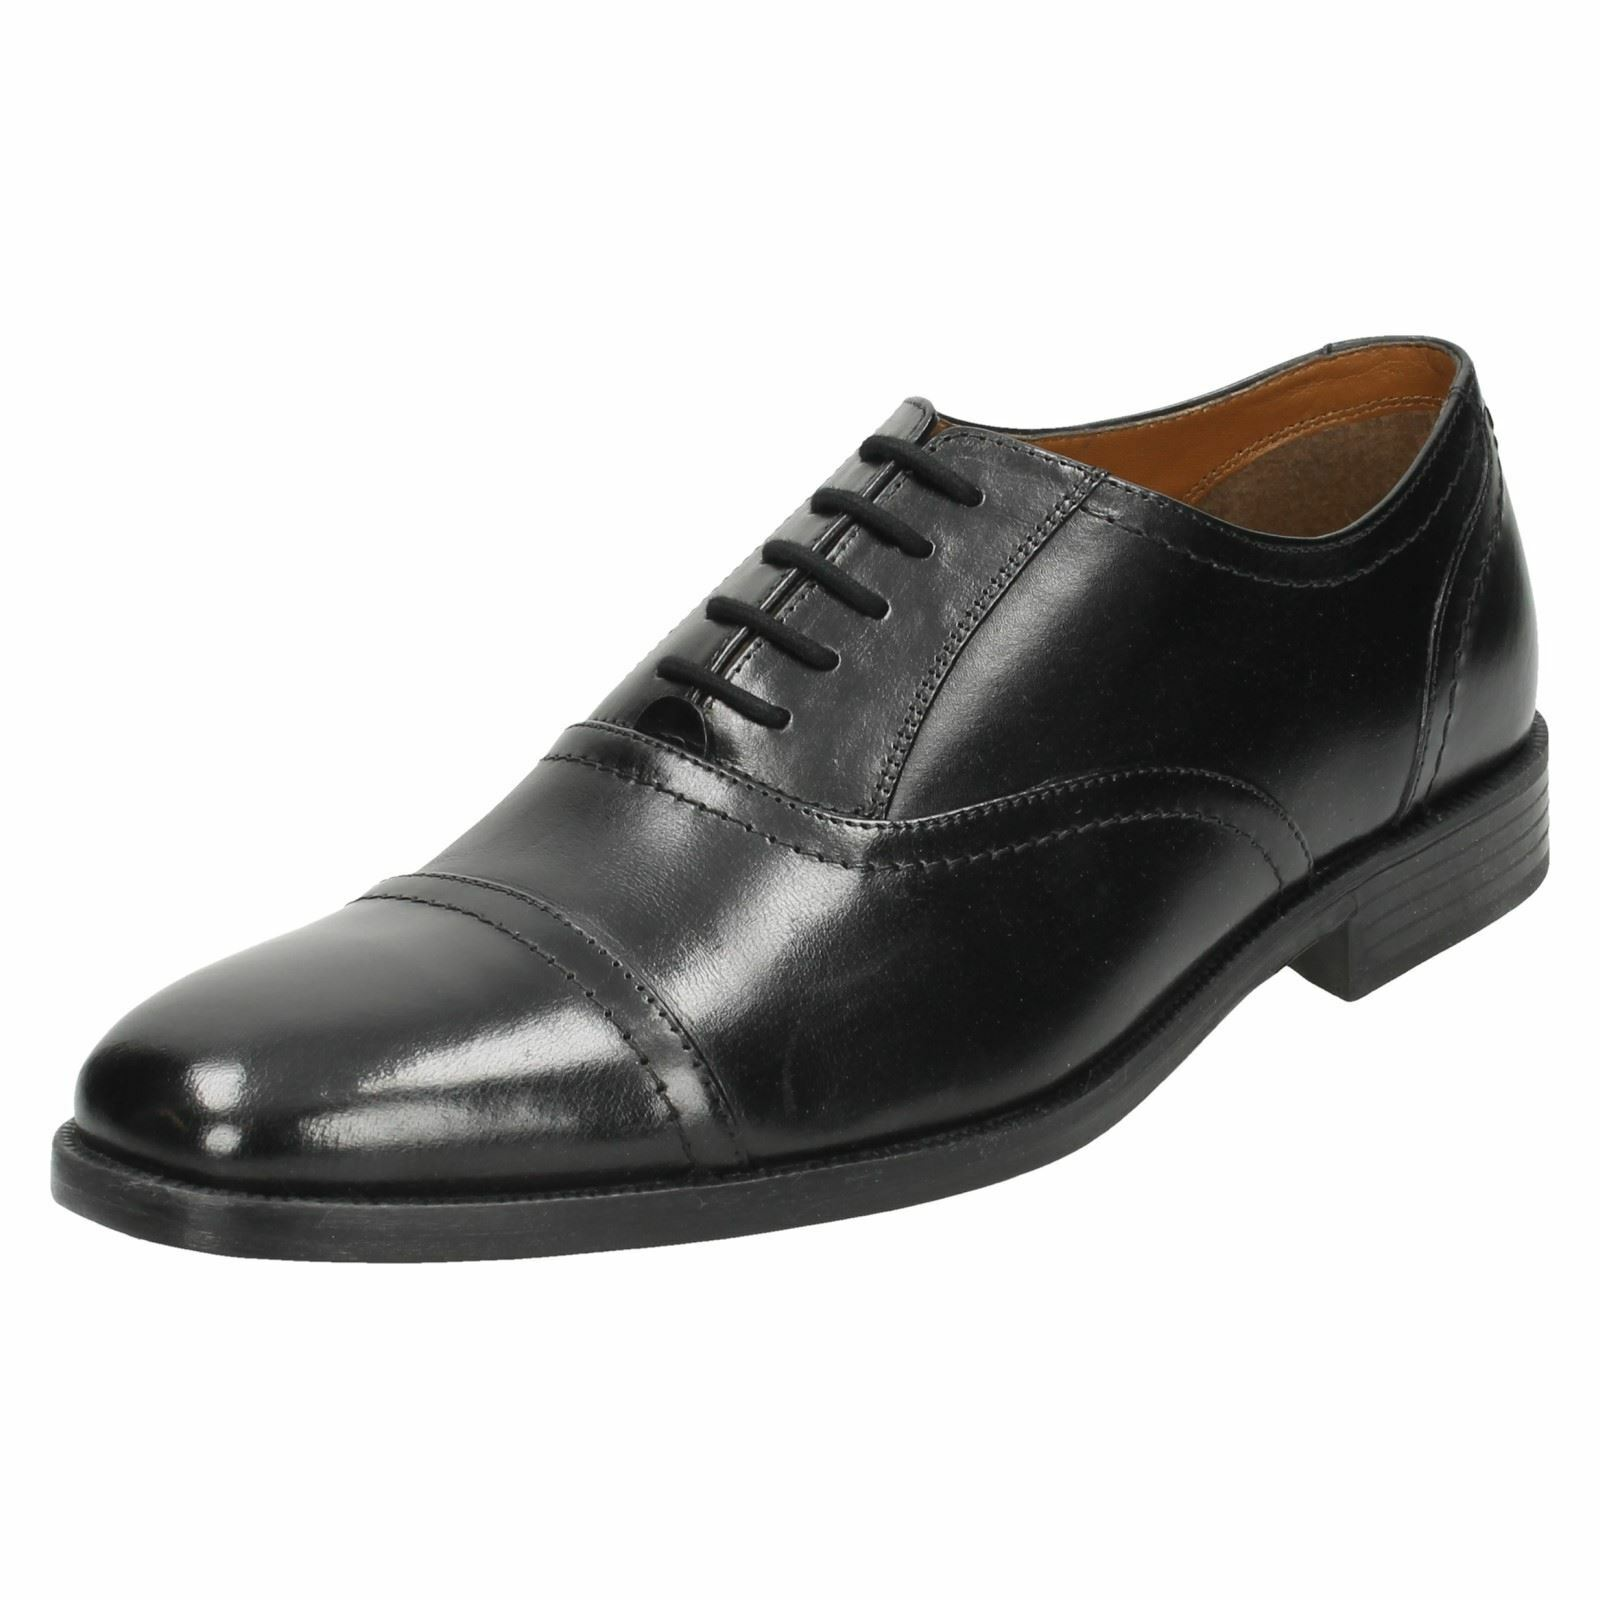 Mens Clarks Formal Lace Up Shoes Holter Lift